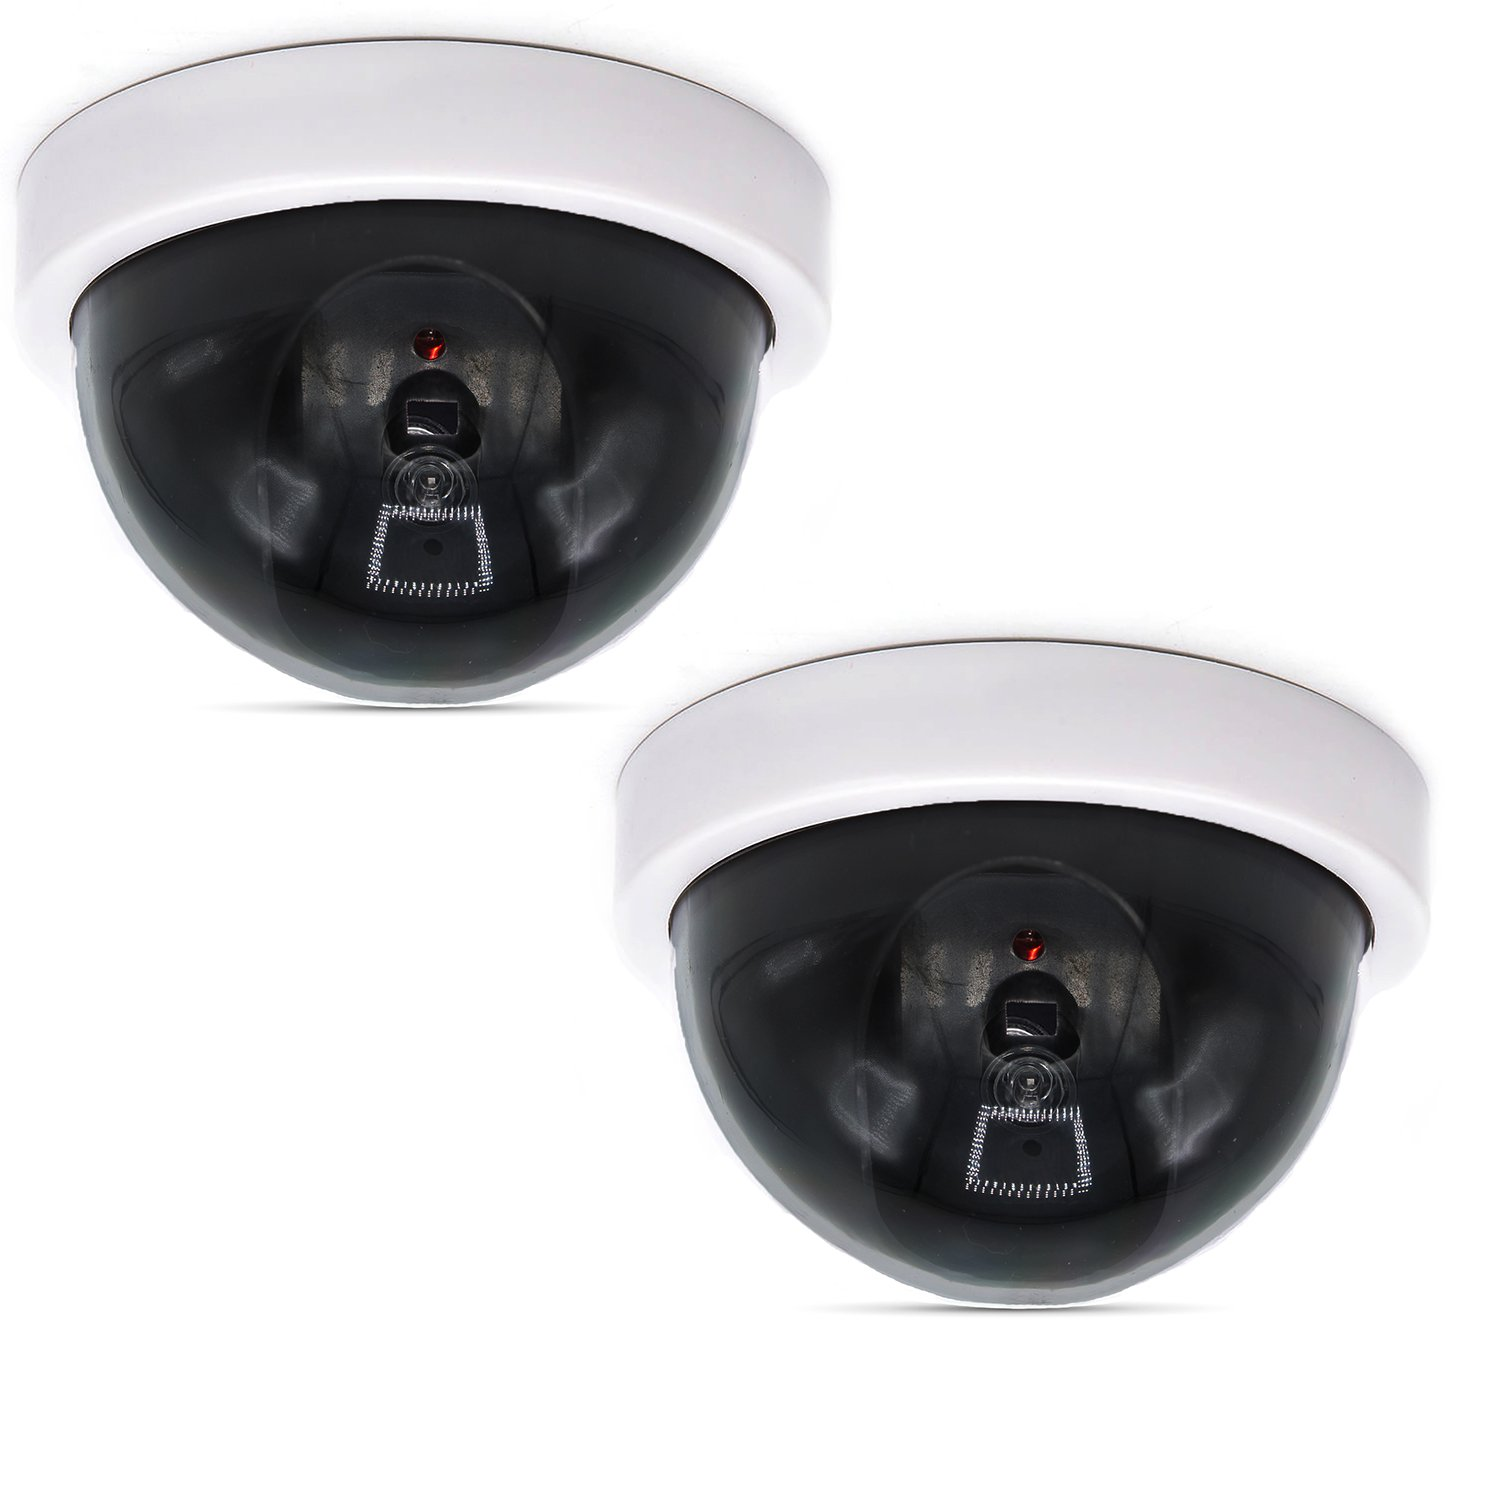 WALI Dummy Fake Security CCTV Dome Camera with Flashing Red LED Light (SDW-2), 2 Packs, White by WALI